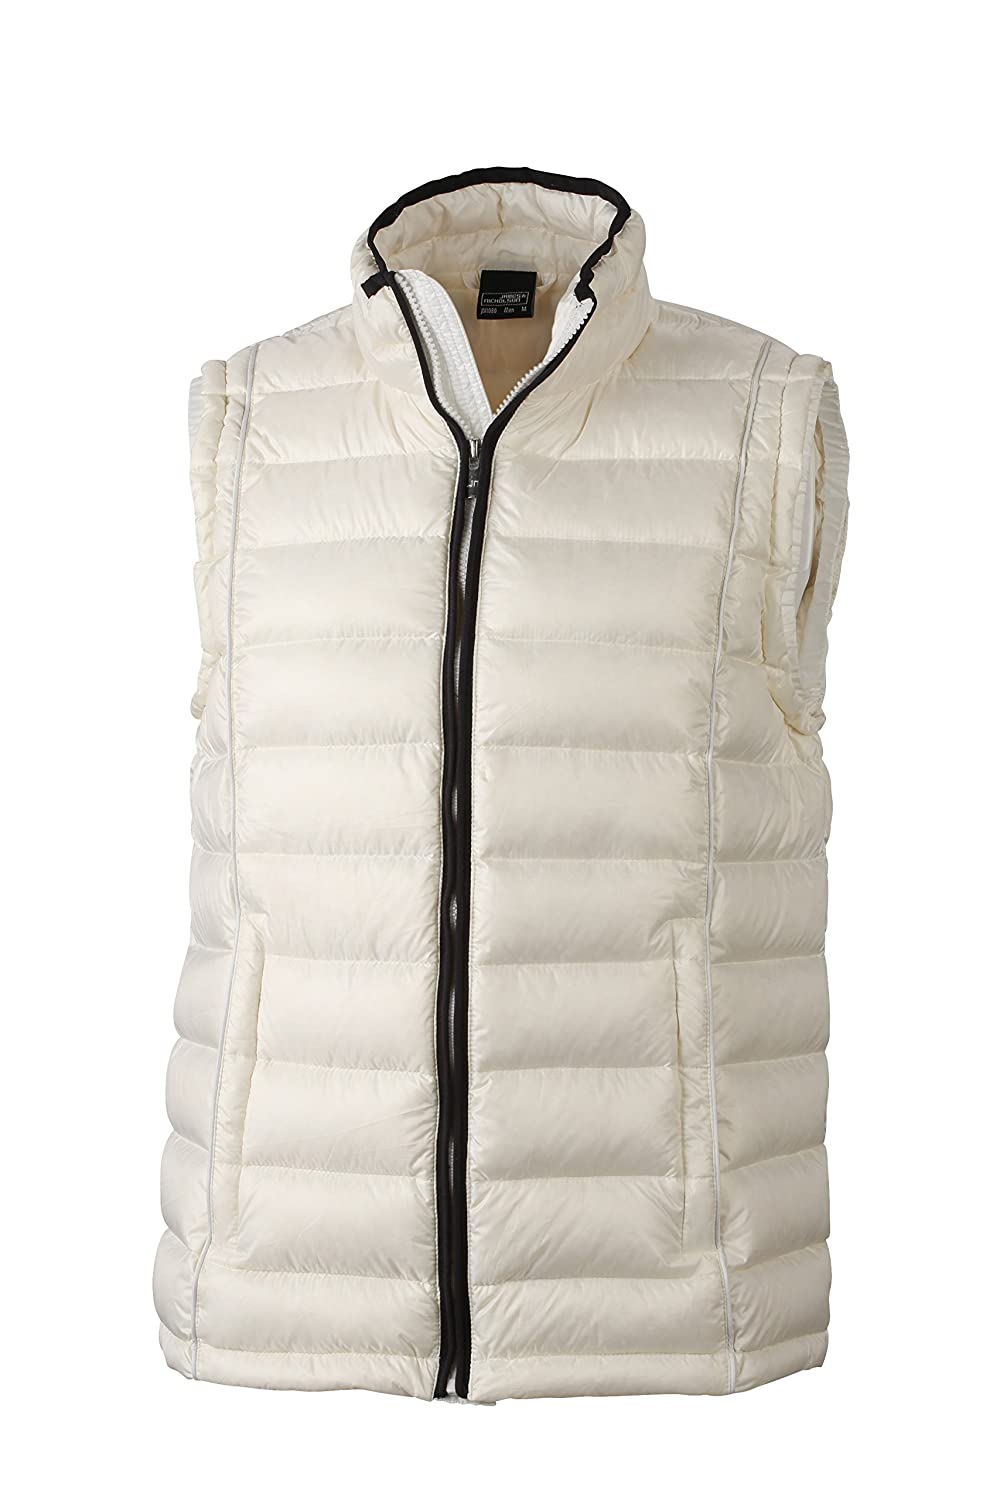 James & Nicholson Daunenweste Men's Quilted Down Vest Chaqueta, Hombre